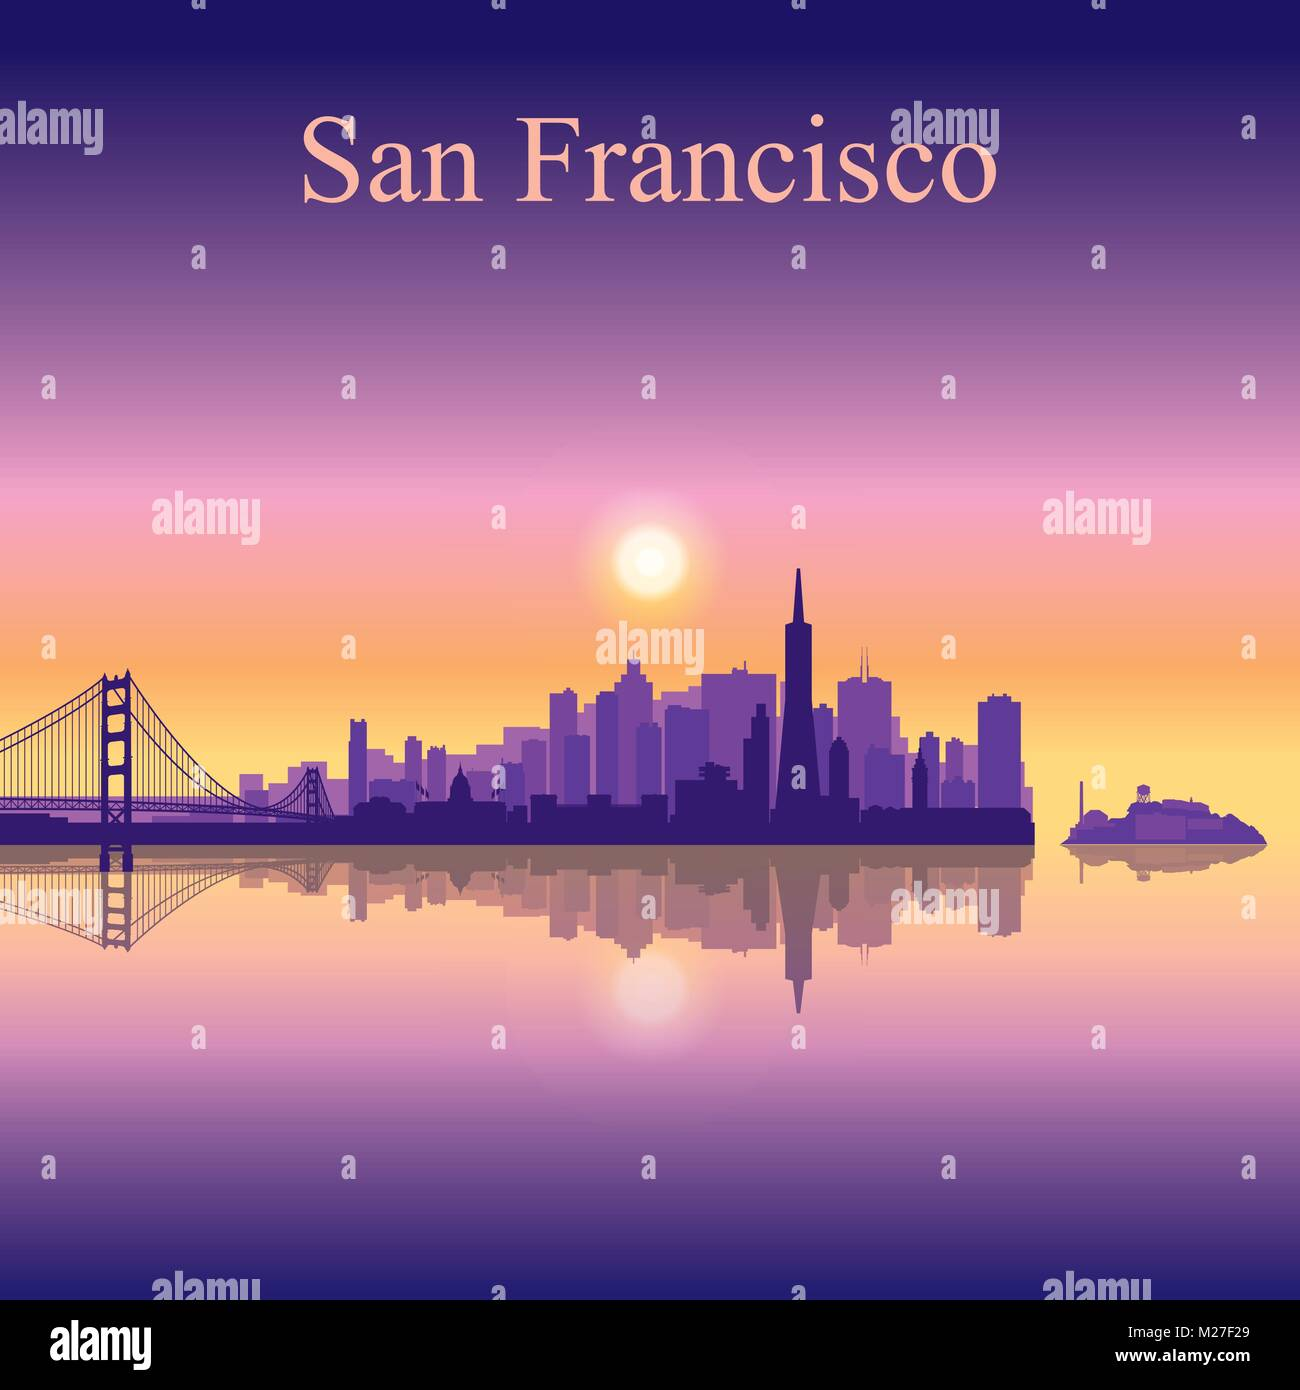 San Francisco Skyline der Stadt Silhouette Hintergrund, Vector Illustration Stockbild